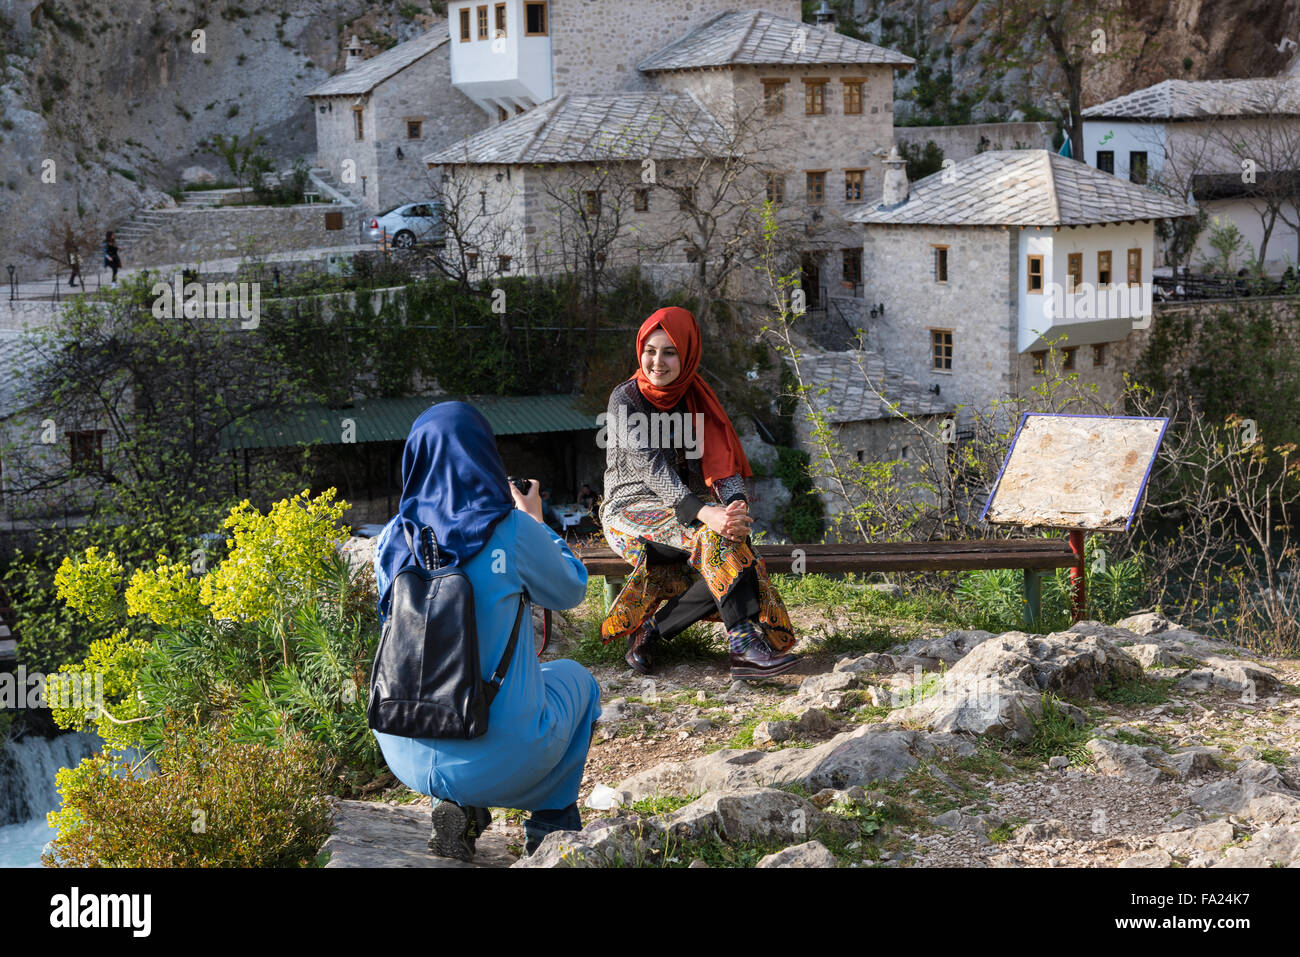 A young woman takes a picture of her friend near the Blagaj Tekke on April 16, 2015 in Blagaj, Bosnia and Herzegovina. - Stock Image